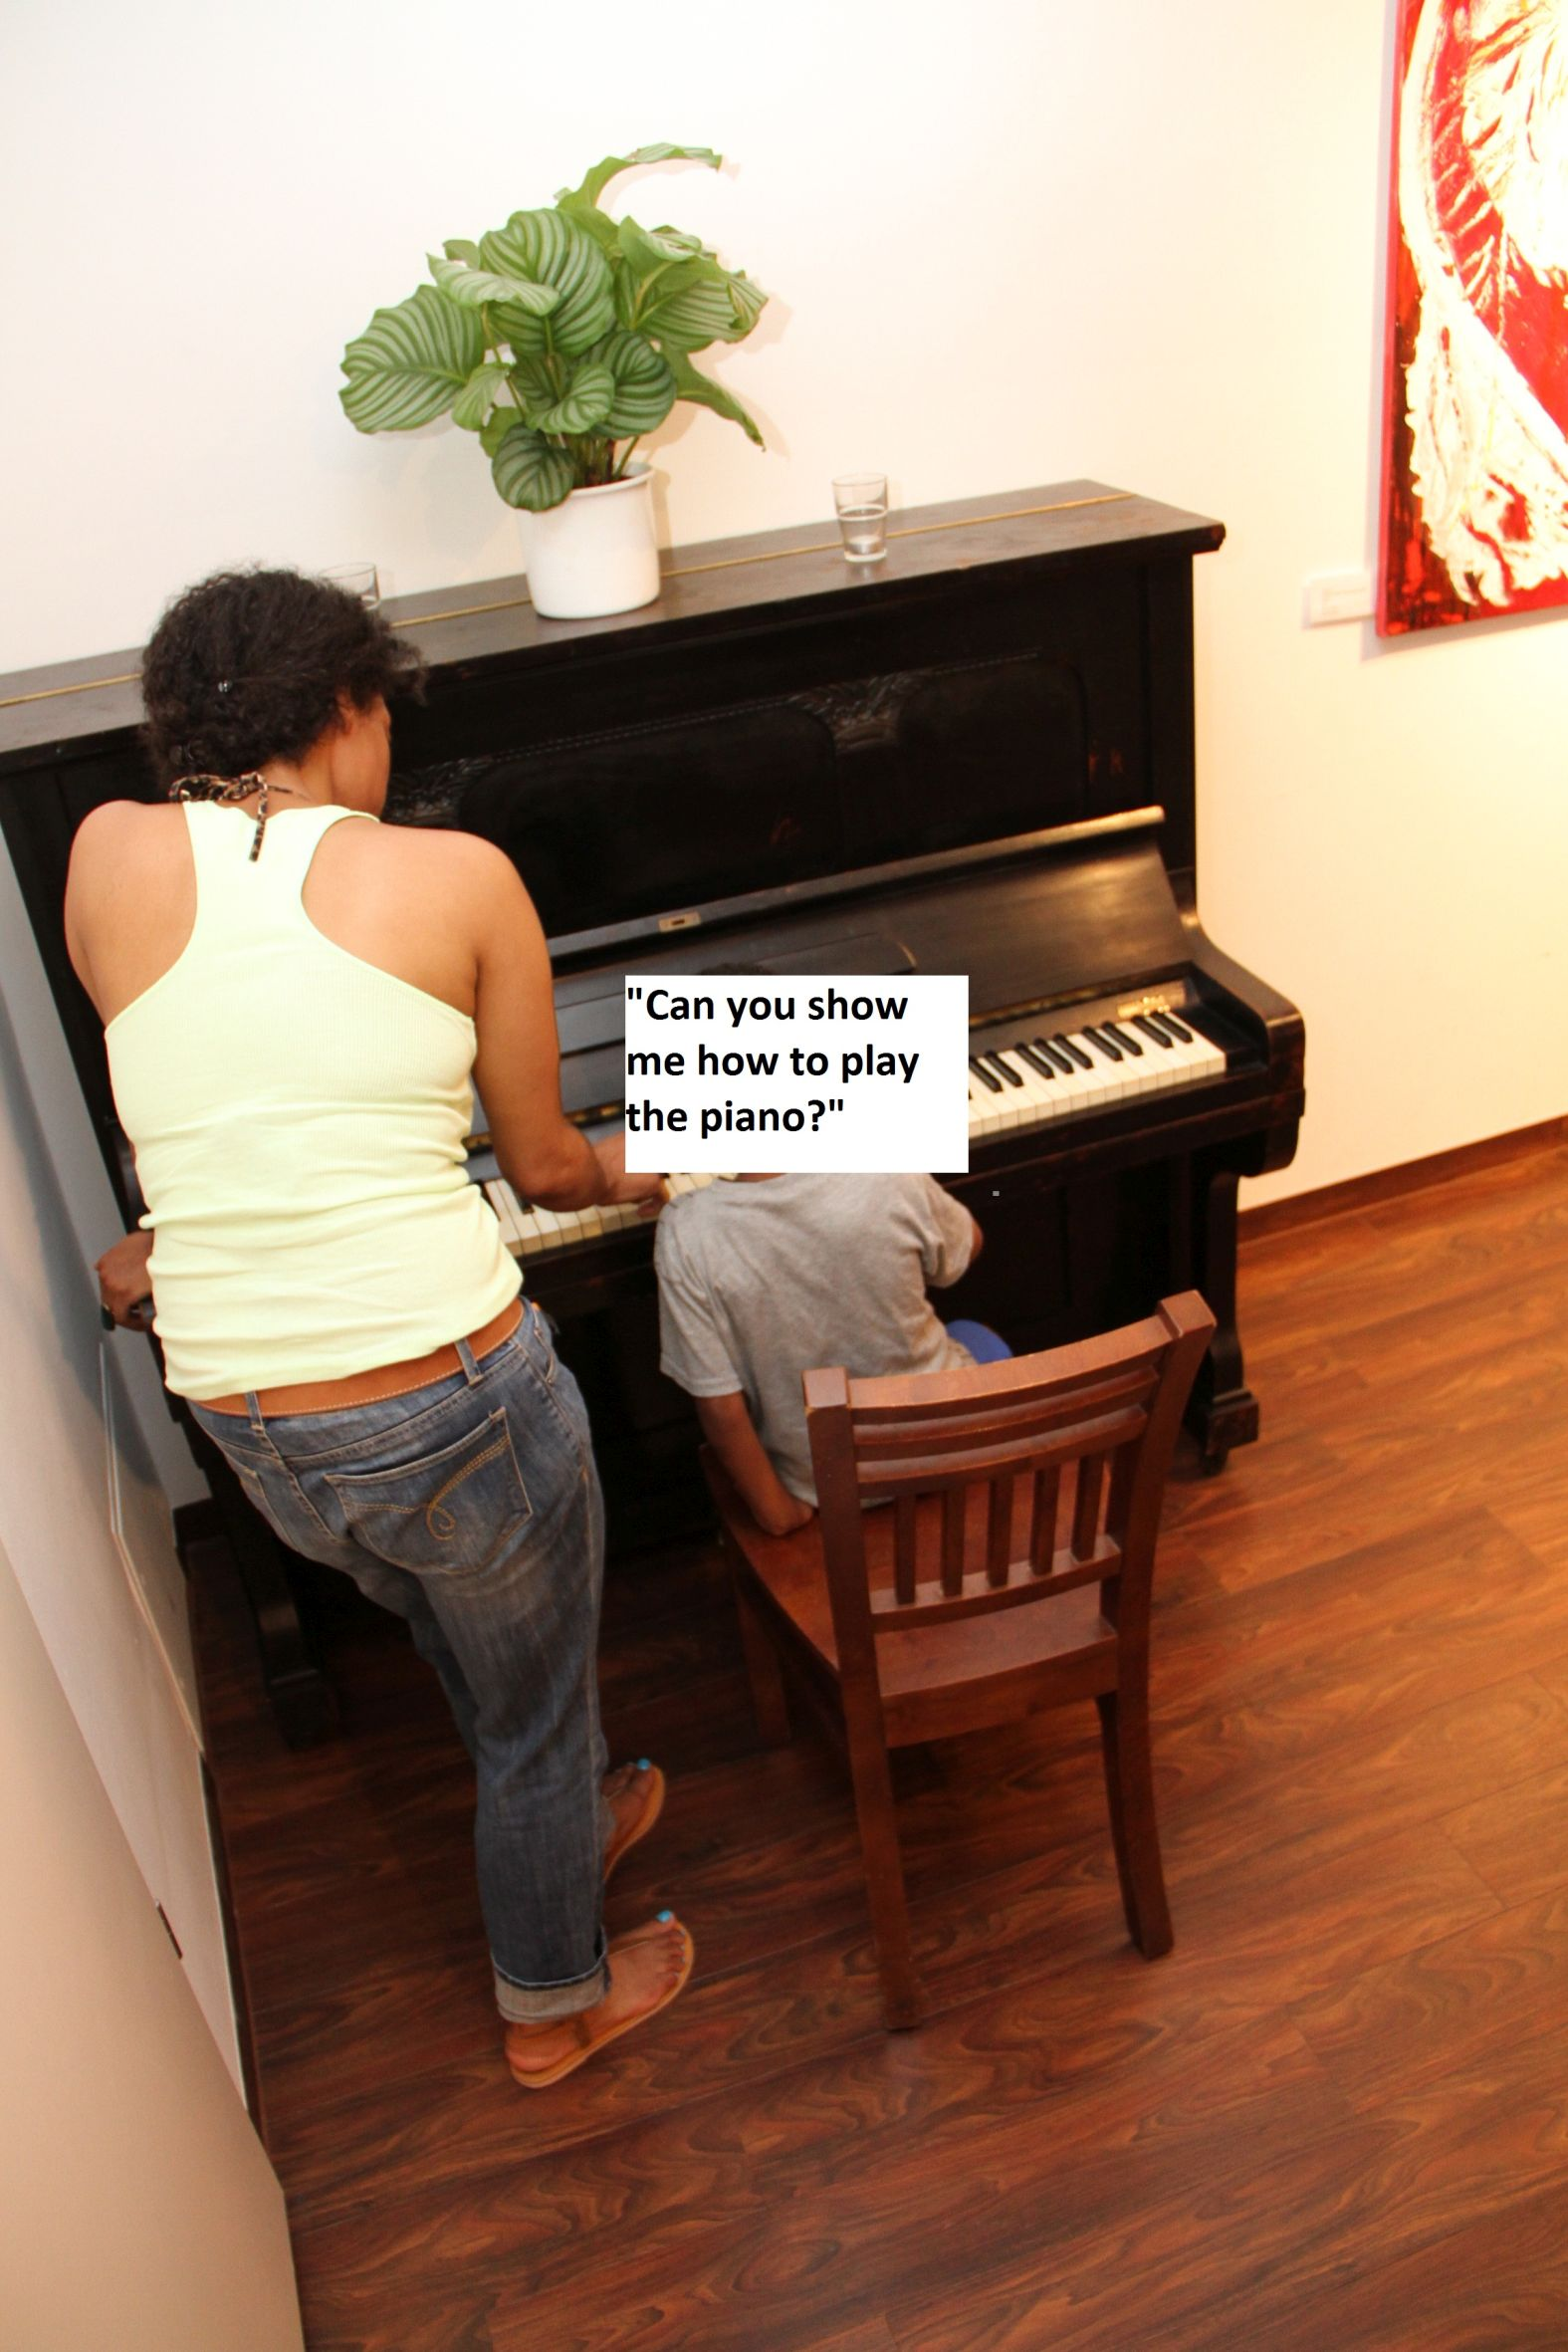 show me how to play the piano